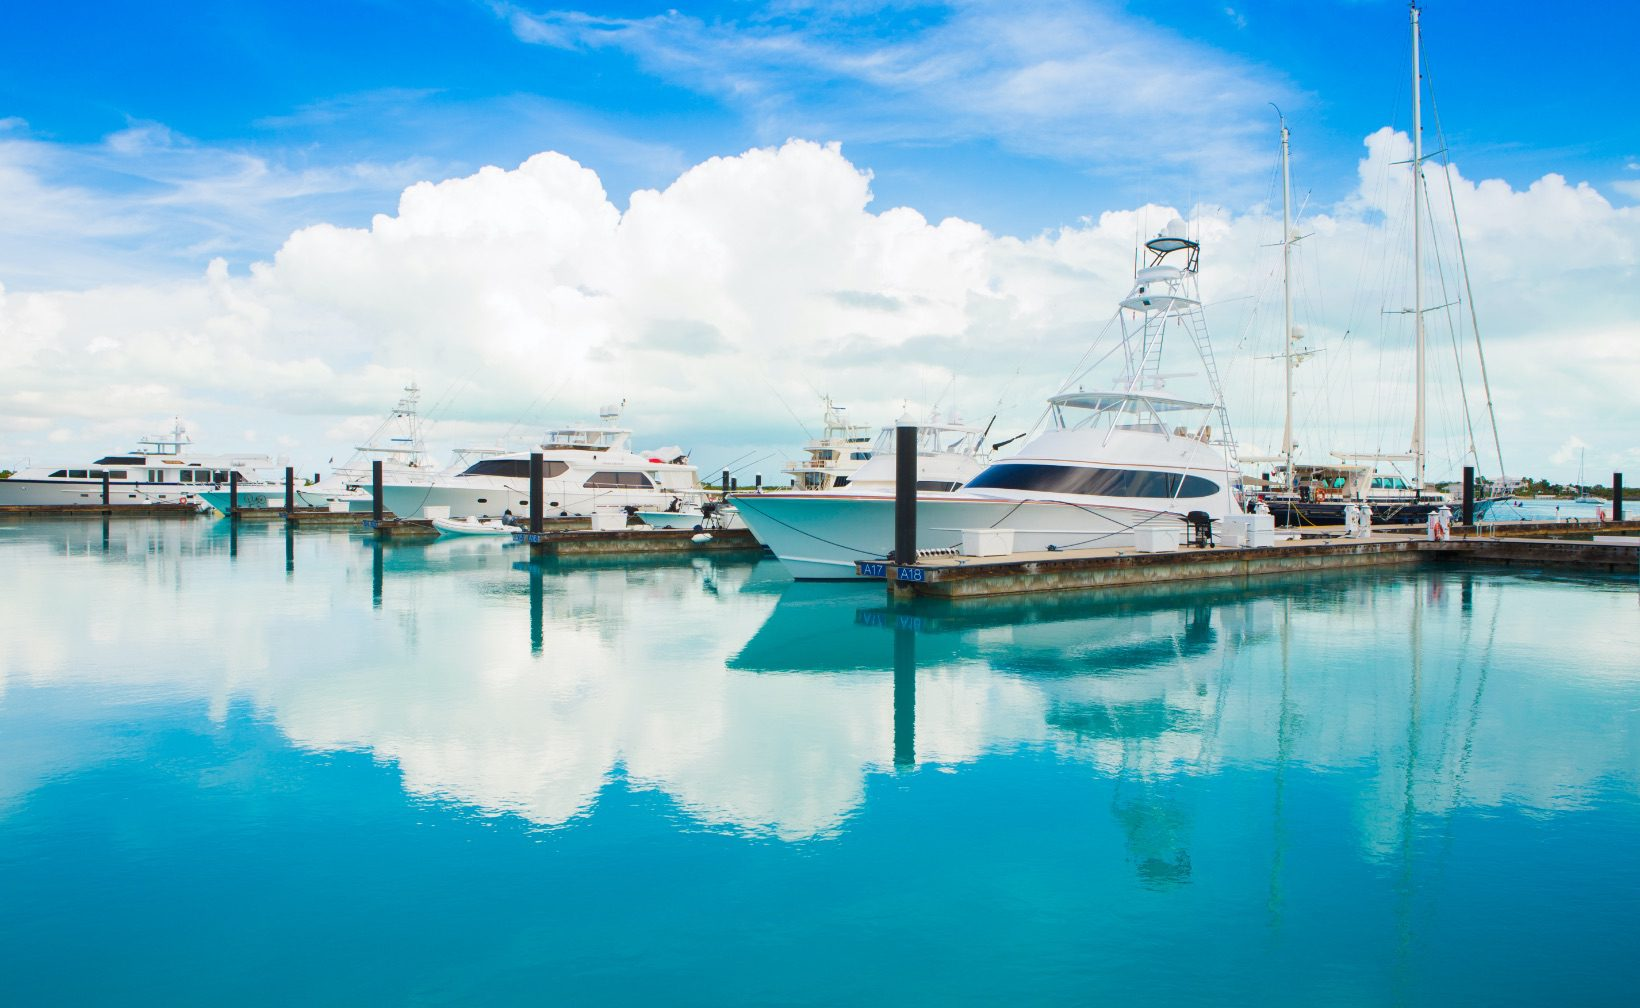 The Strand Turks and Caicos - Marina